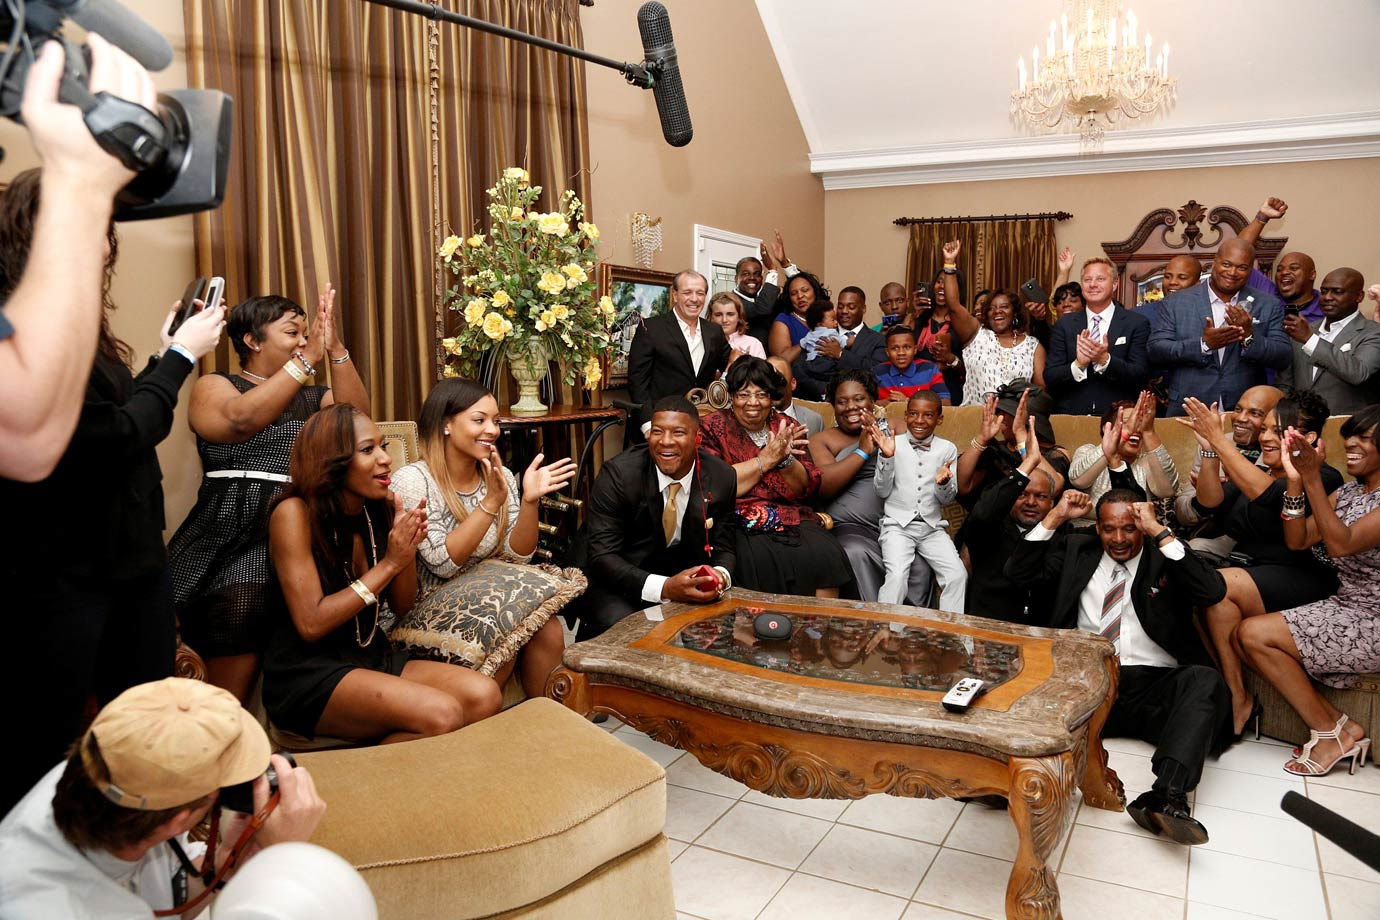 The draft's No. 1 pick, Florida State quarterback Jameis Winston (center, gold tie), celebrated with family and friends as he received his selection call from the Buccaneers.